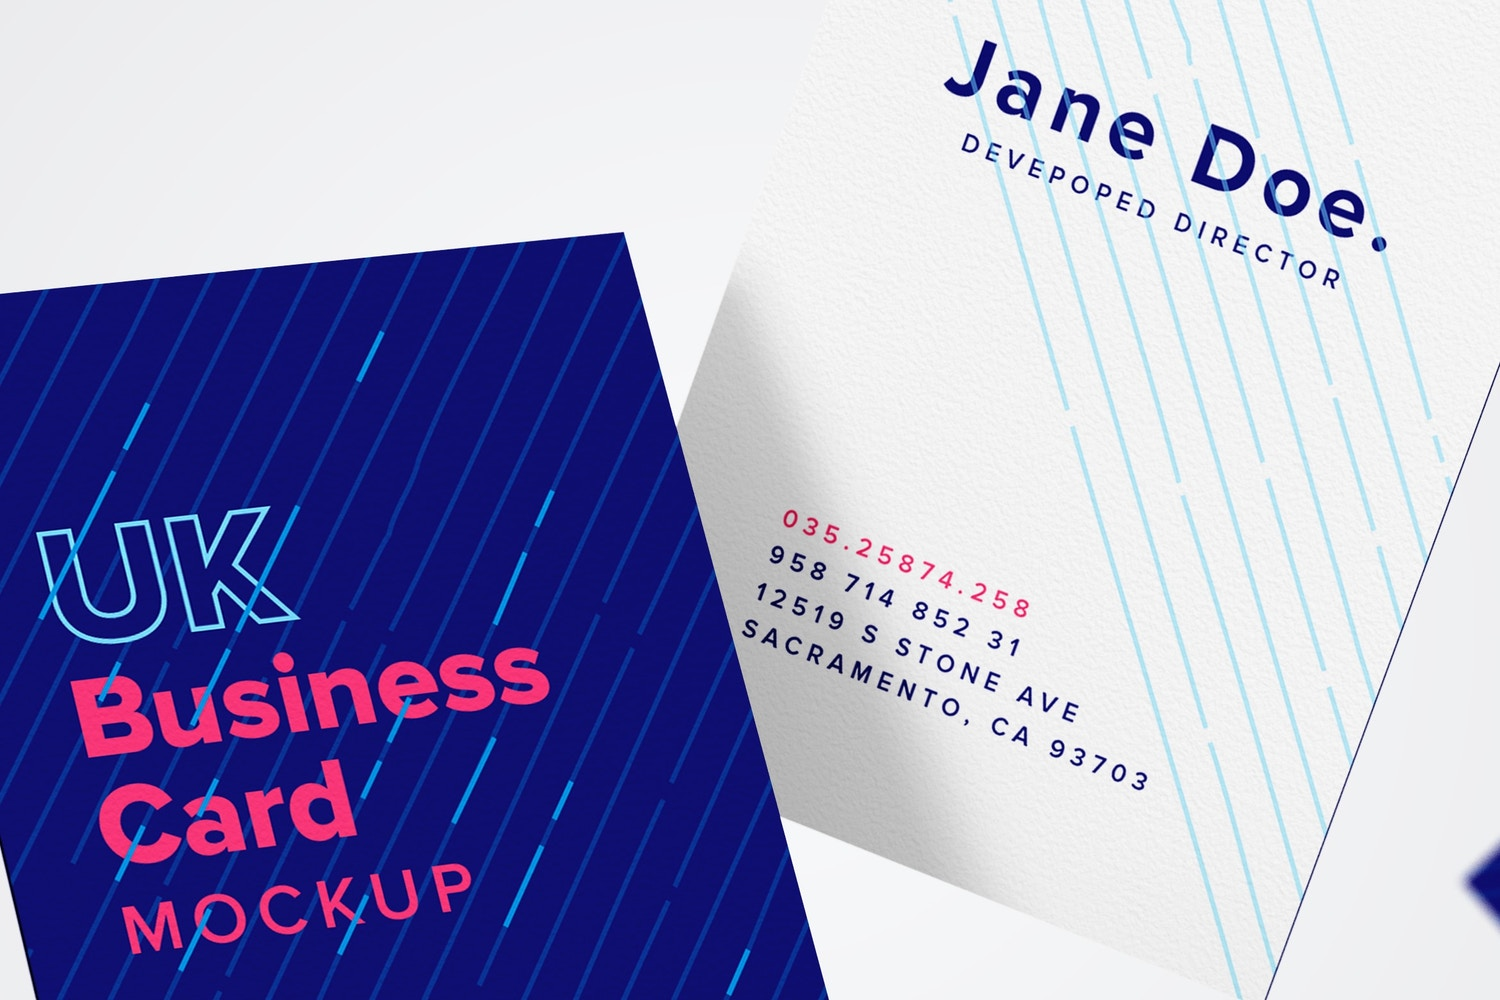 UK Business Card Mockup 05